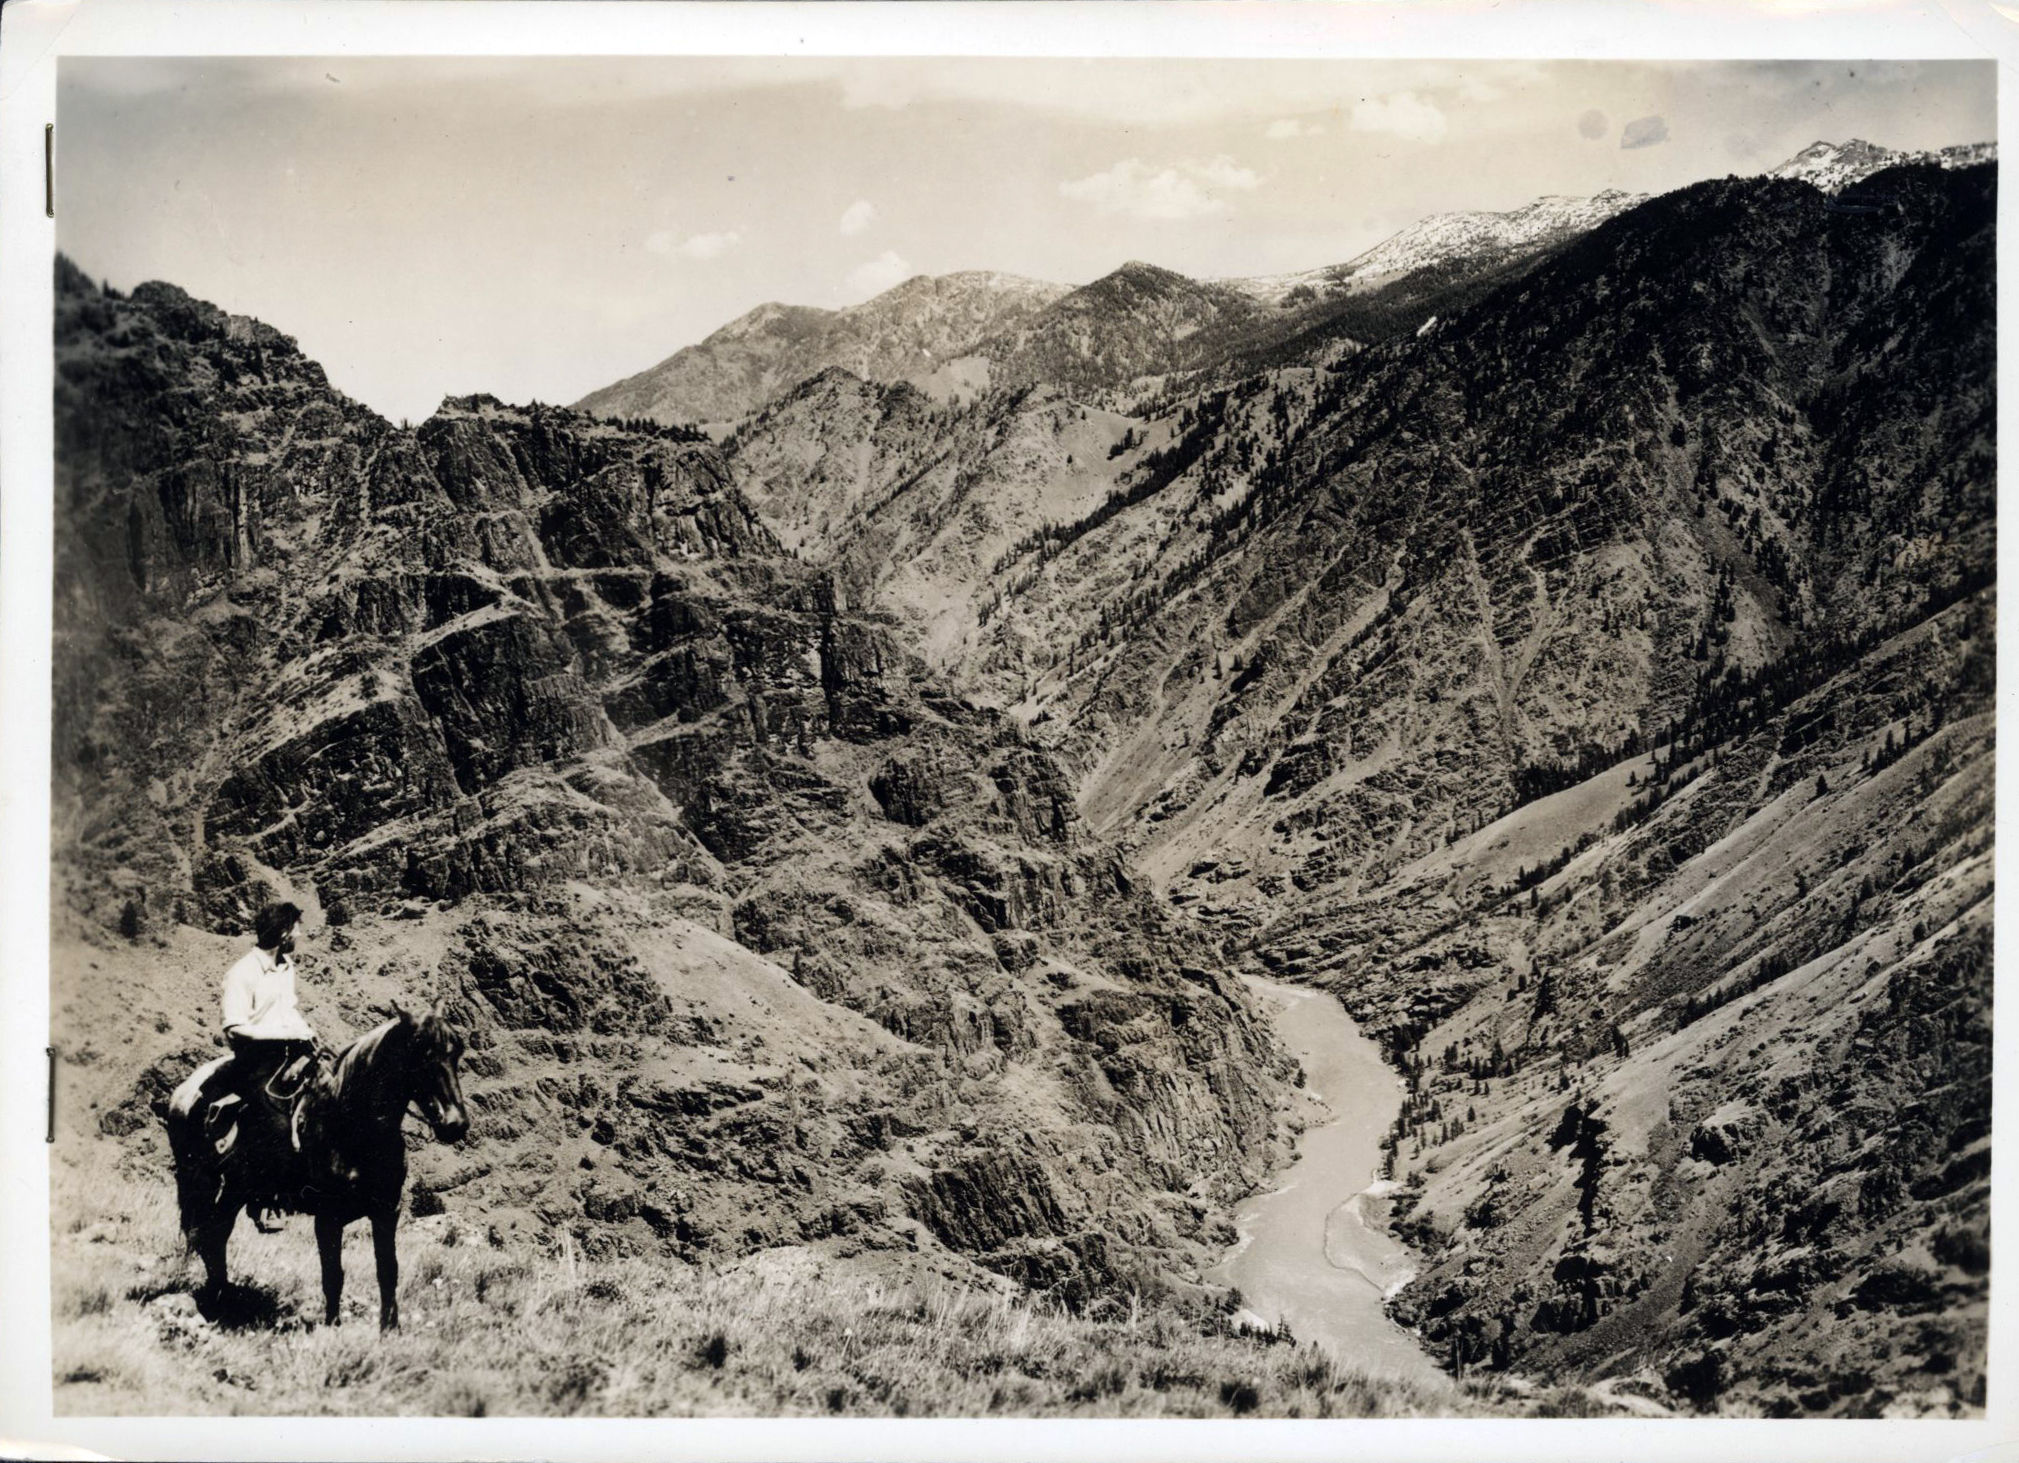 Snake River Canyon, 1938